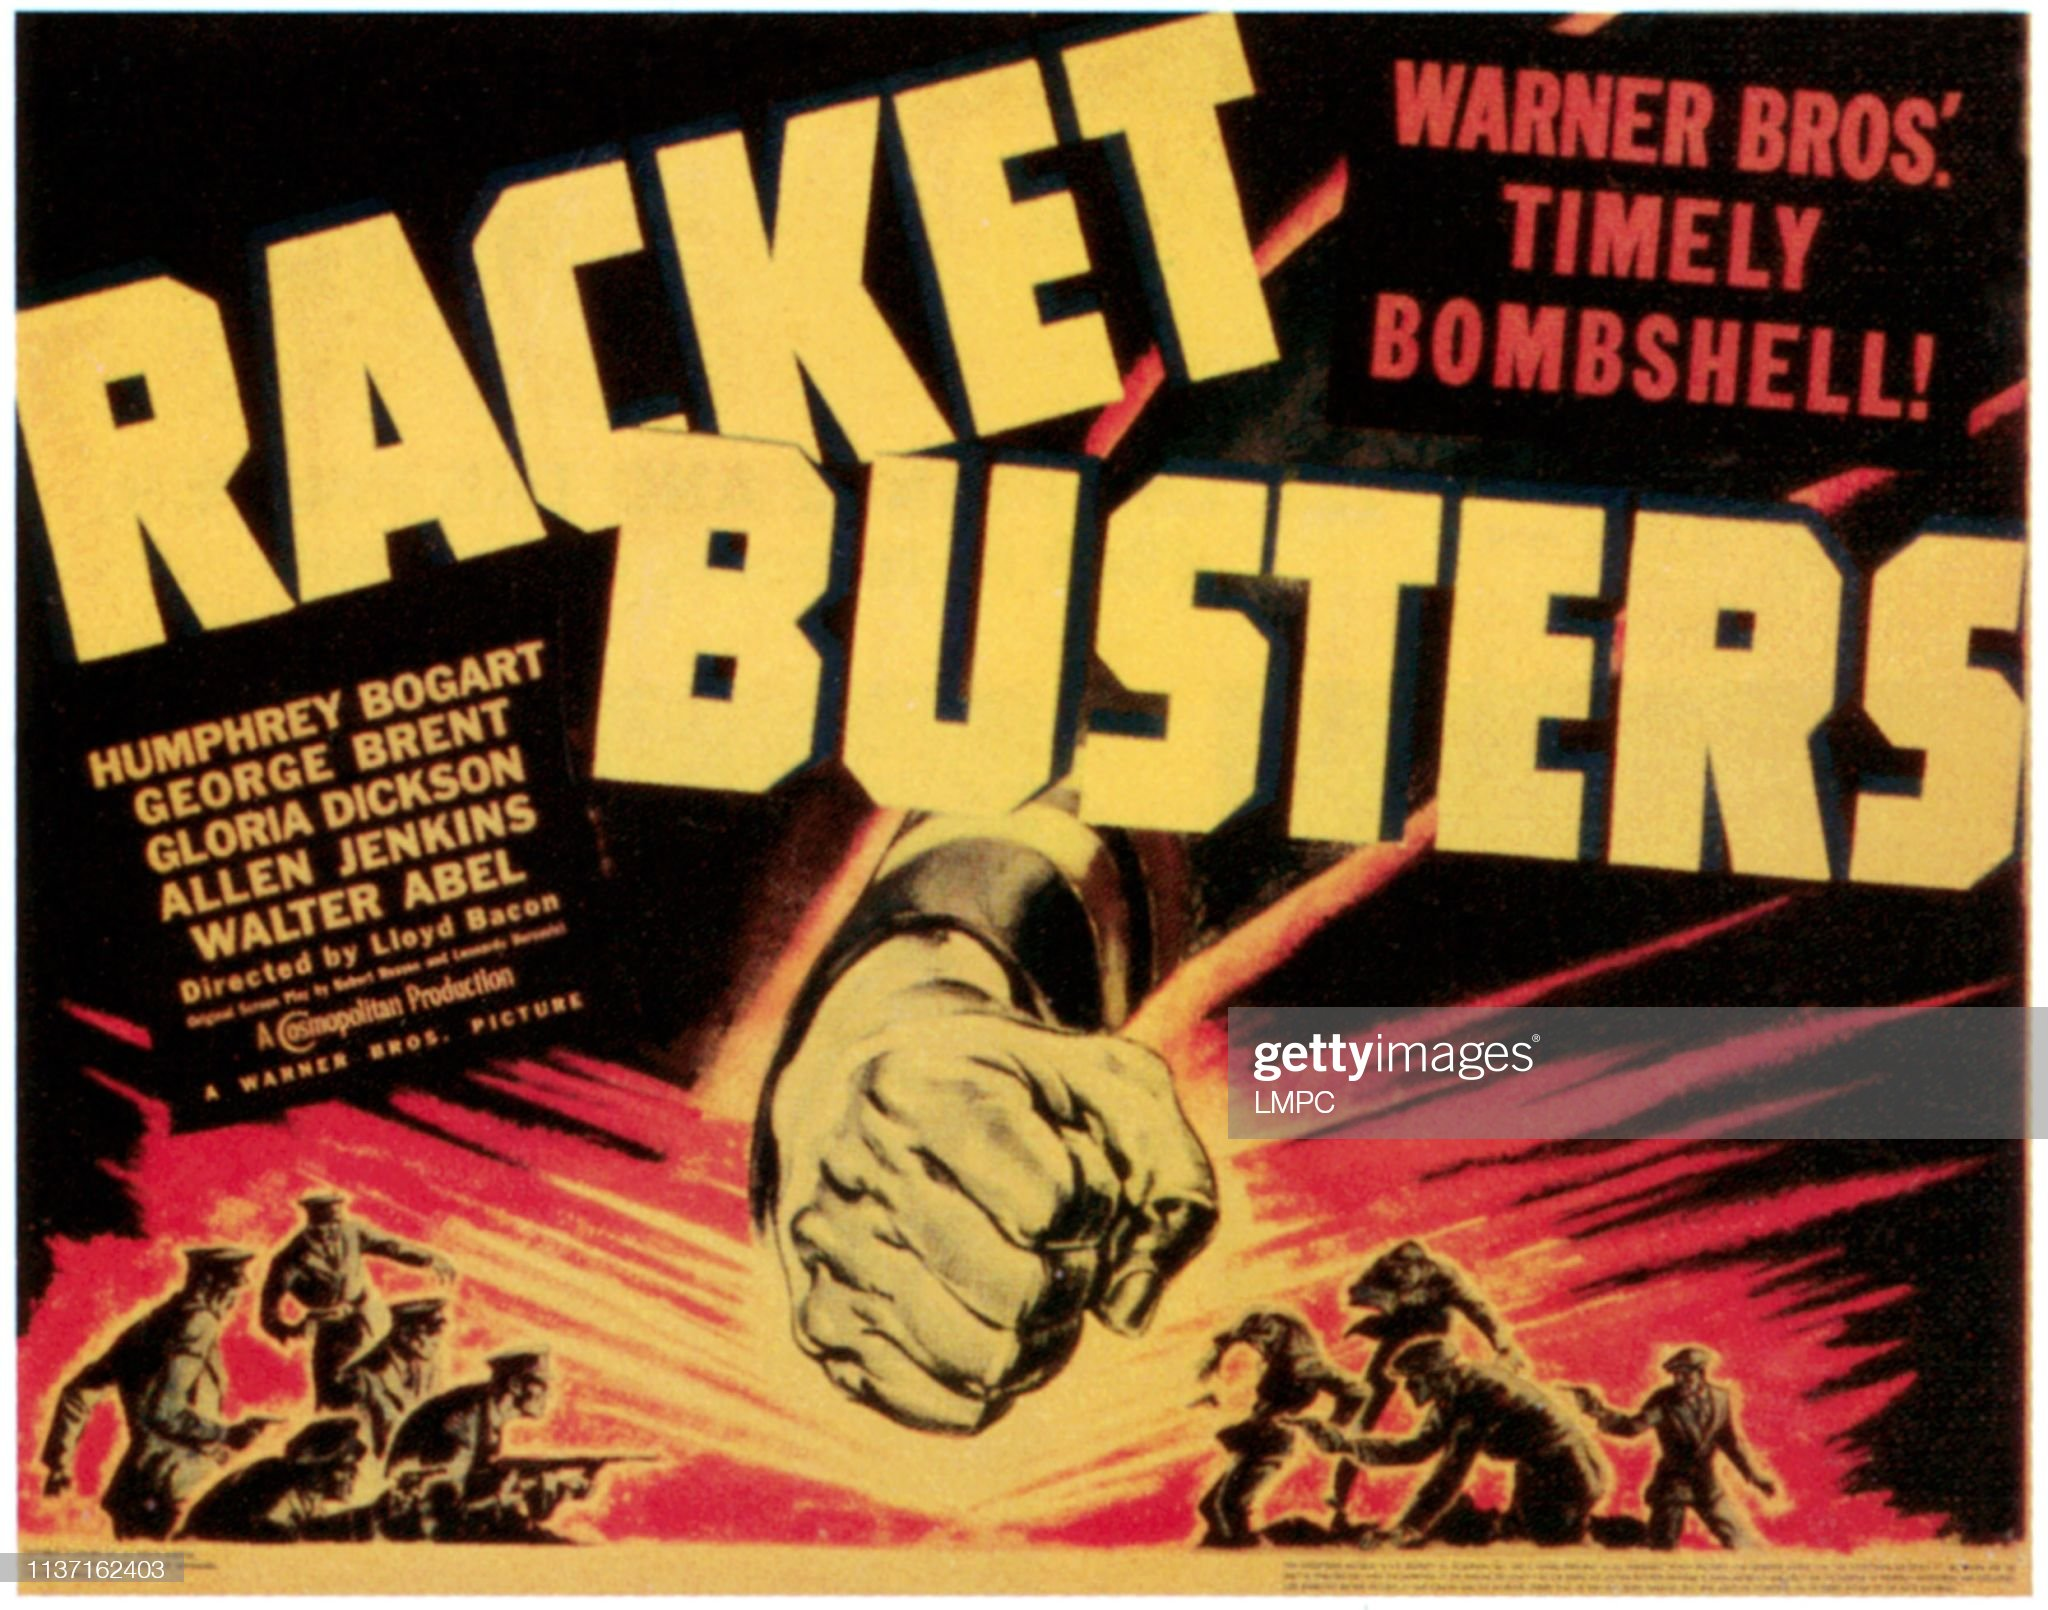 racket-busters-poster-1938-picture-id1137162403?s=2048x2048